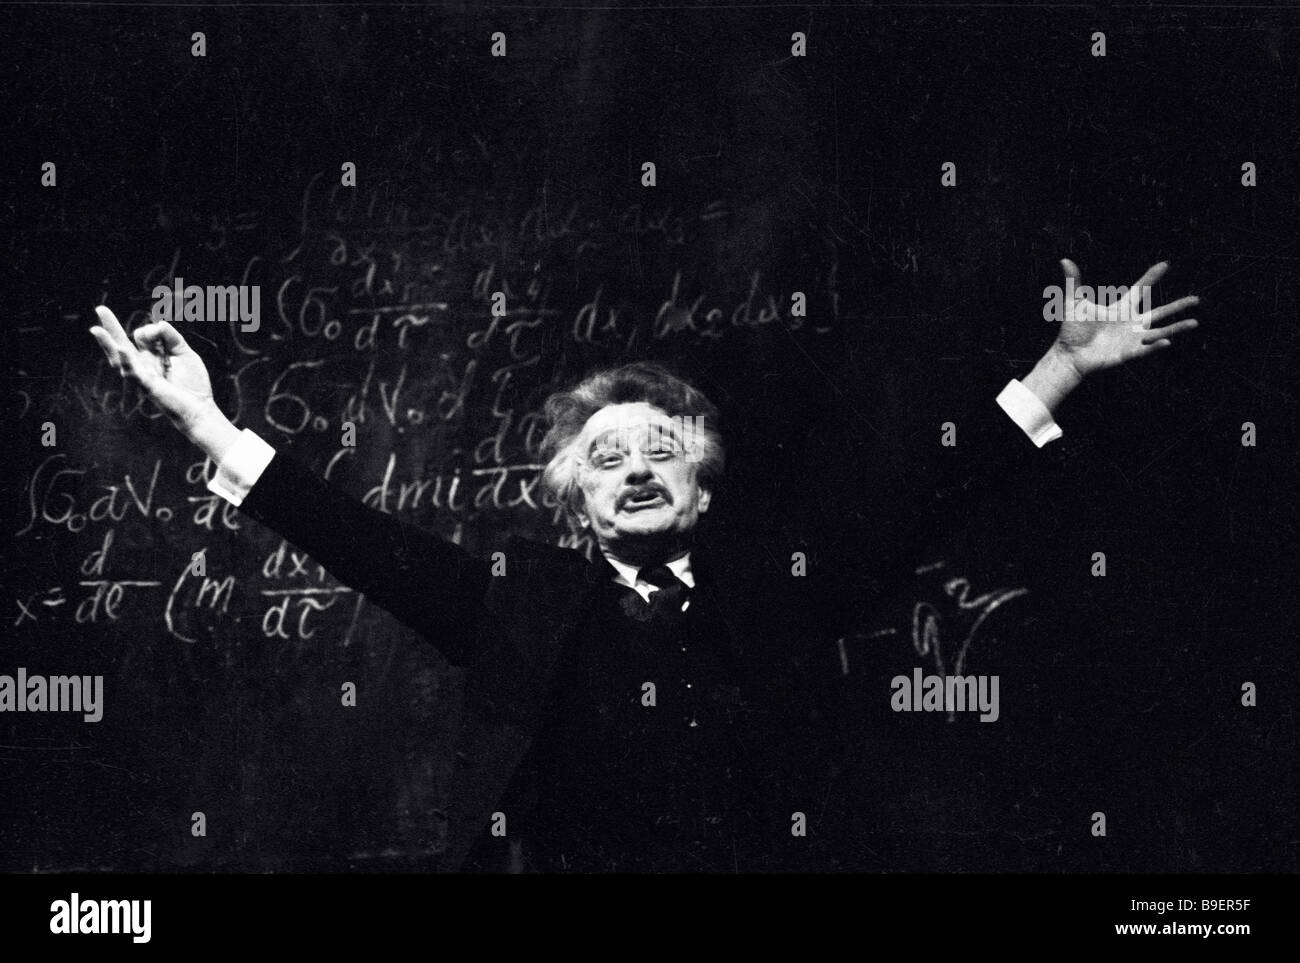 Anatoly Ktorov as Albert Einstein in The Countdown staged by Maksim Gorky Artistic theatre in Moscow - Stock Image